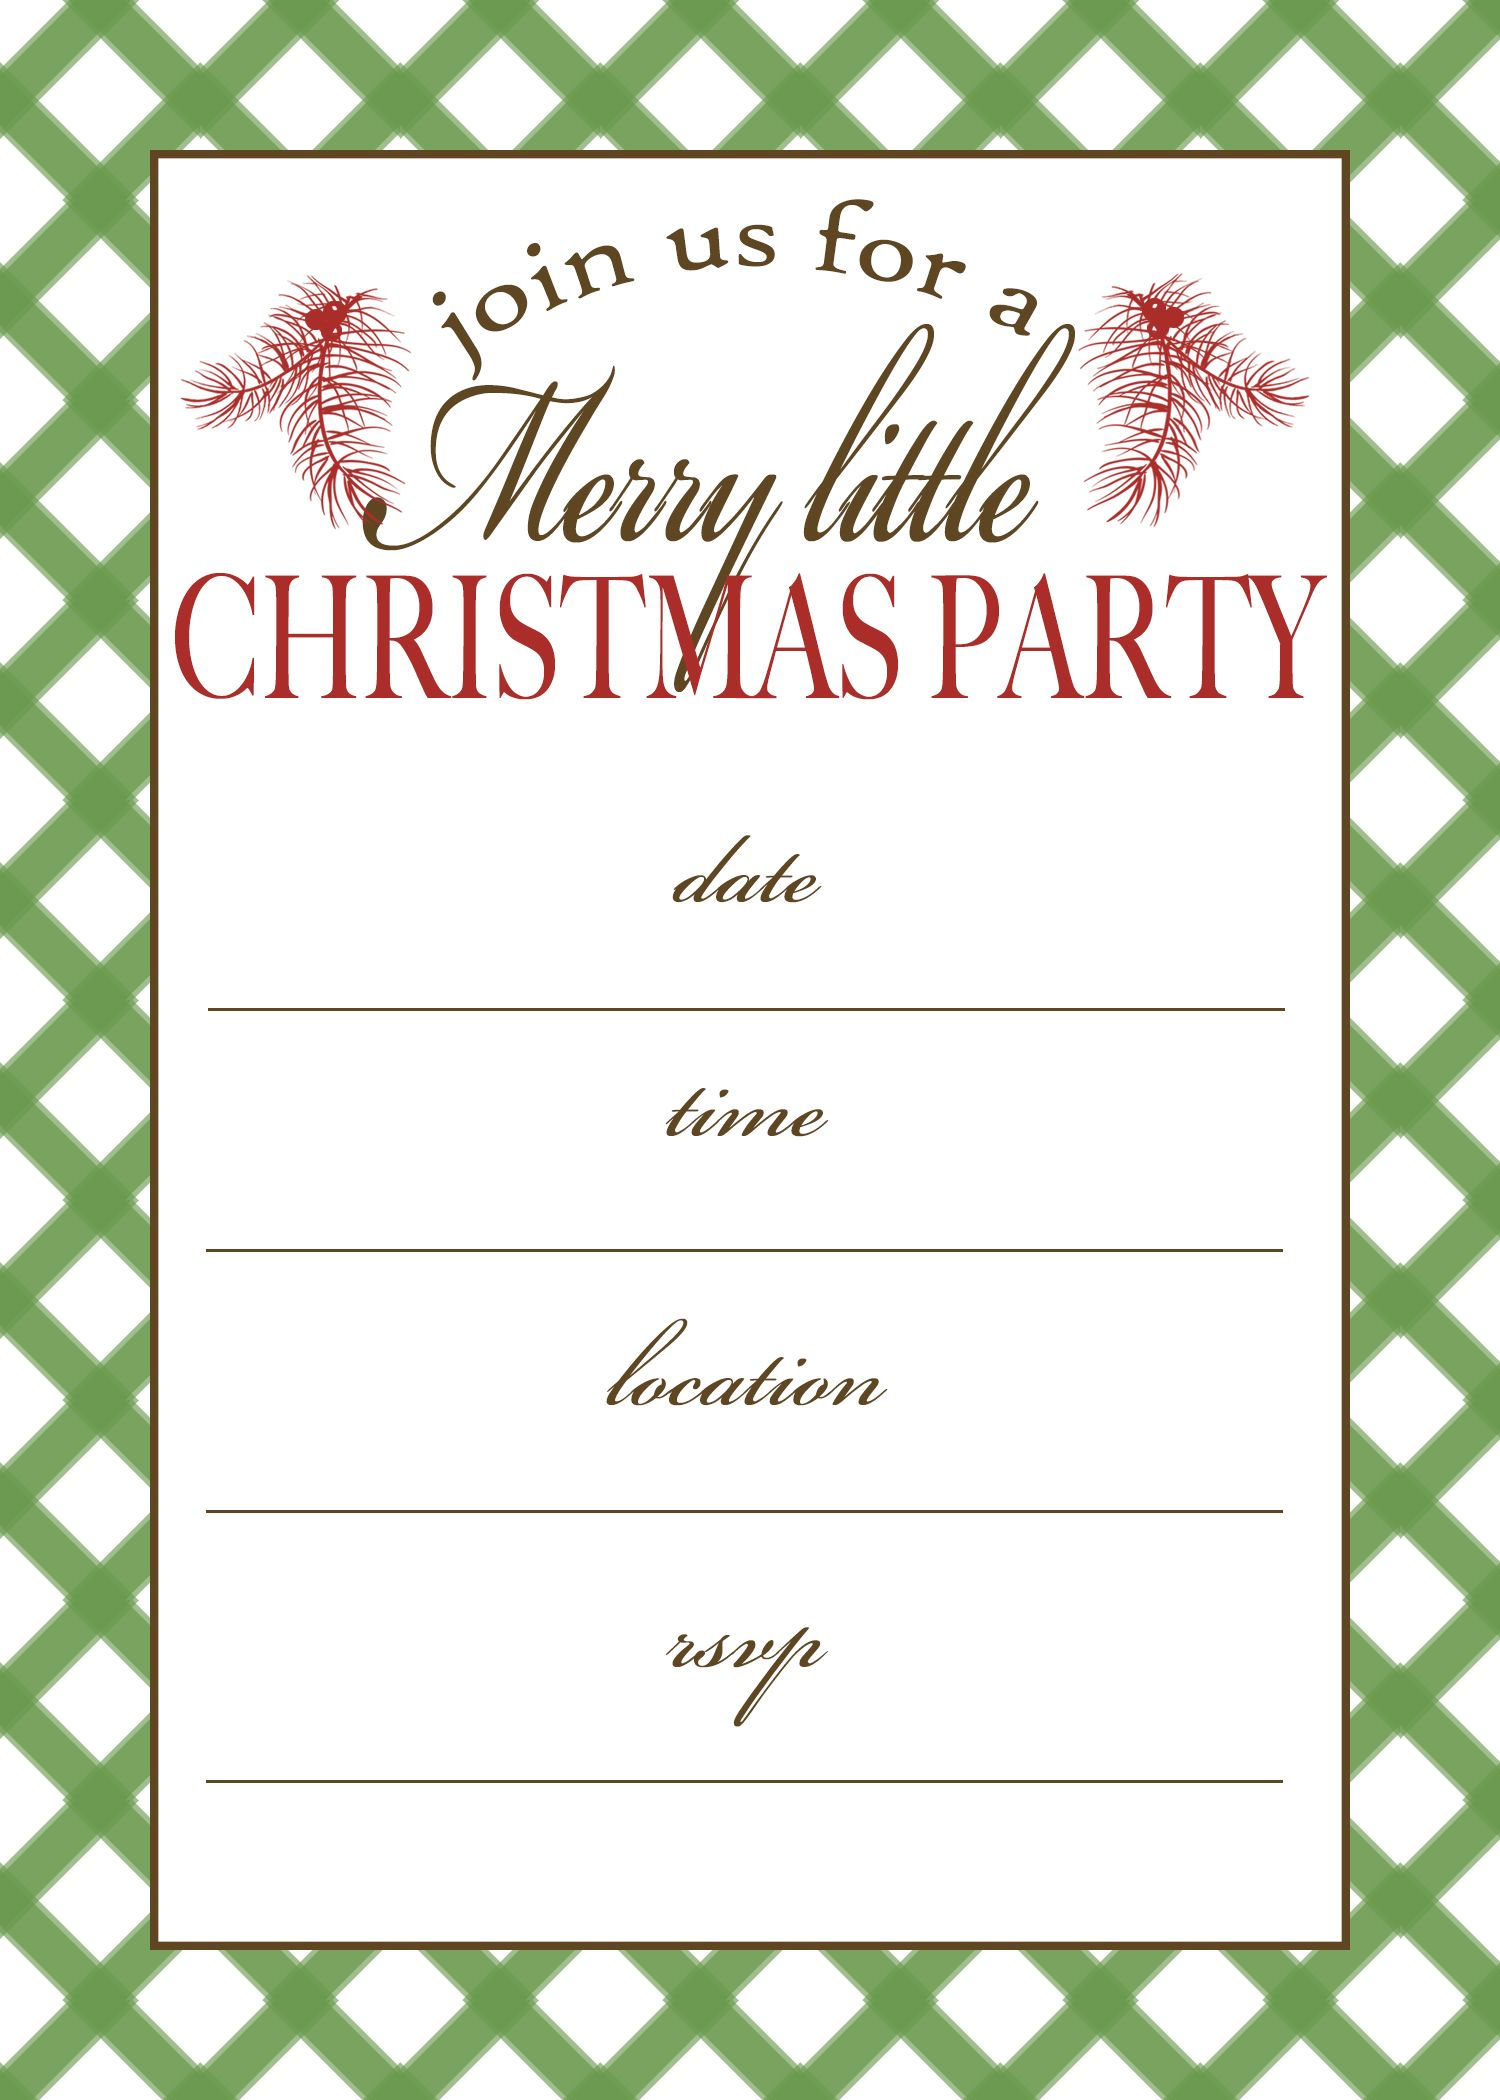 Free Printable Christmas Party Invitation | Free printable, Xmas ...